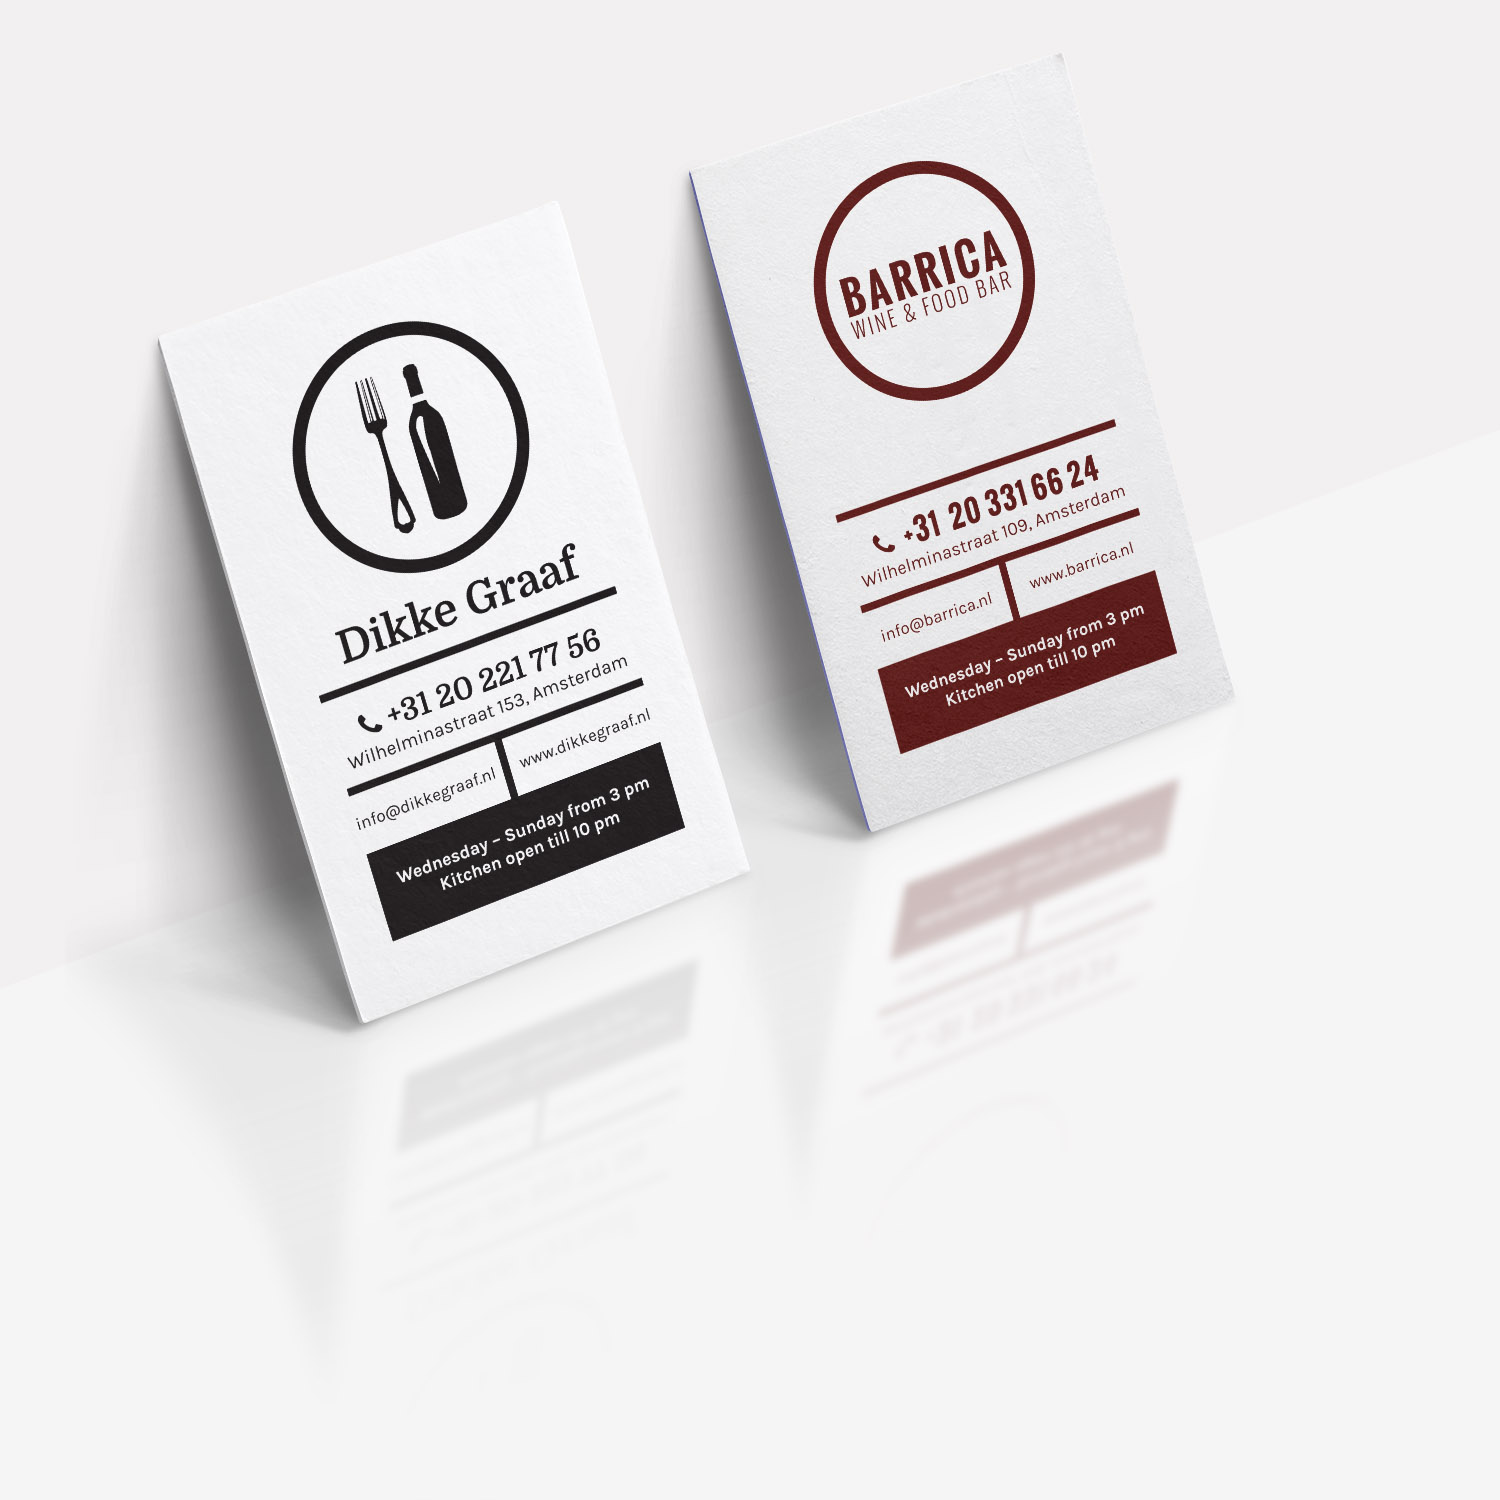 barrica business card